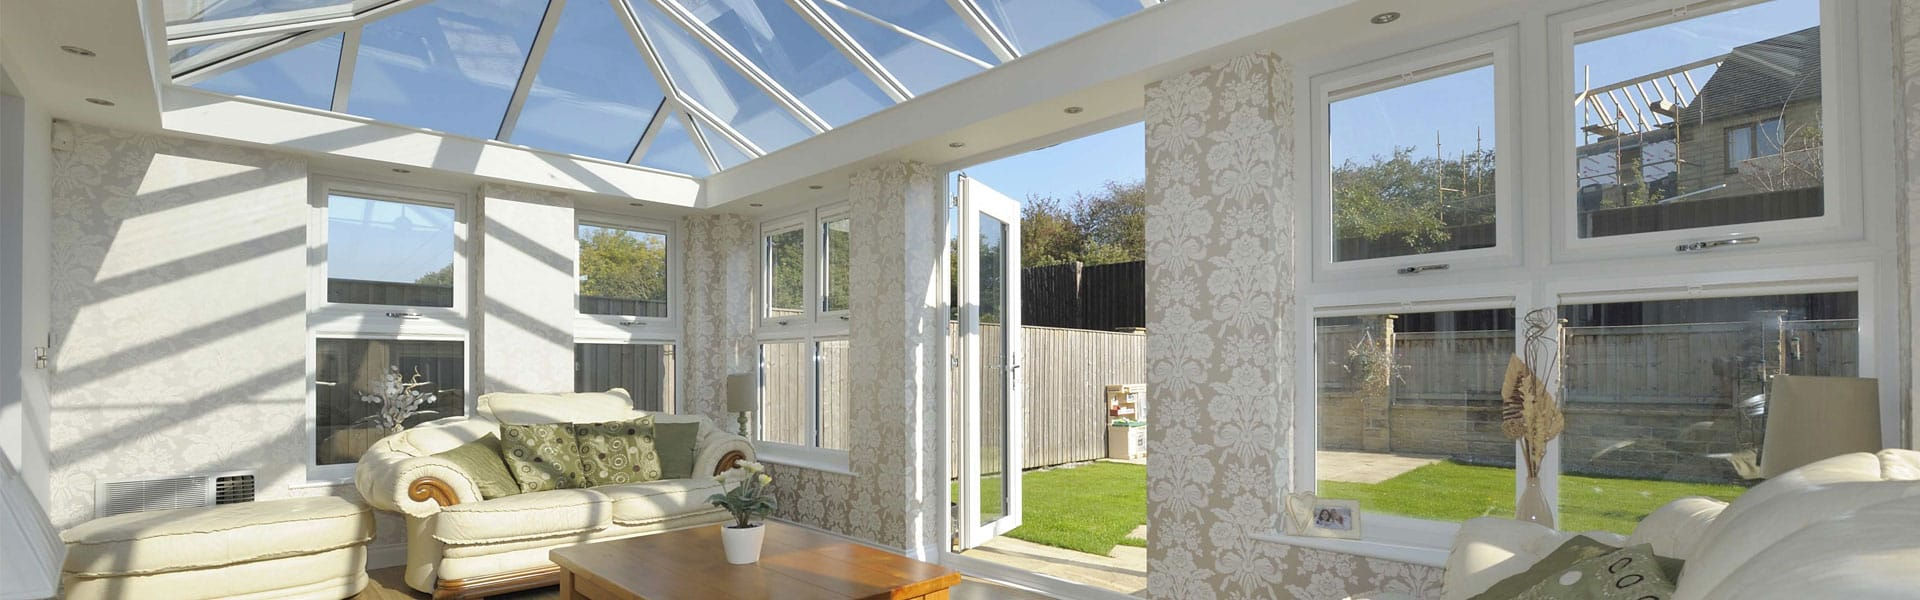 Double Glazing Prices Stirling